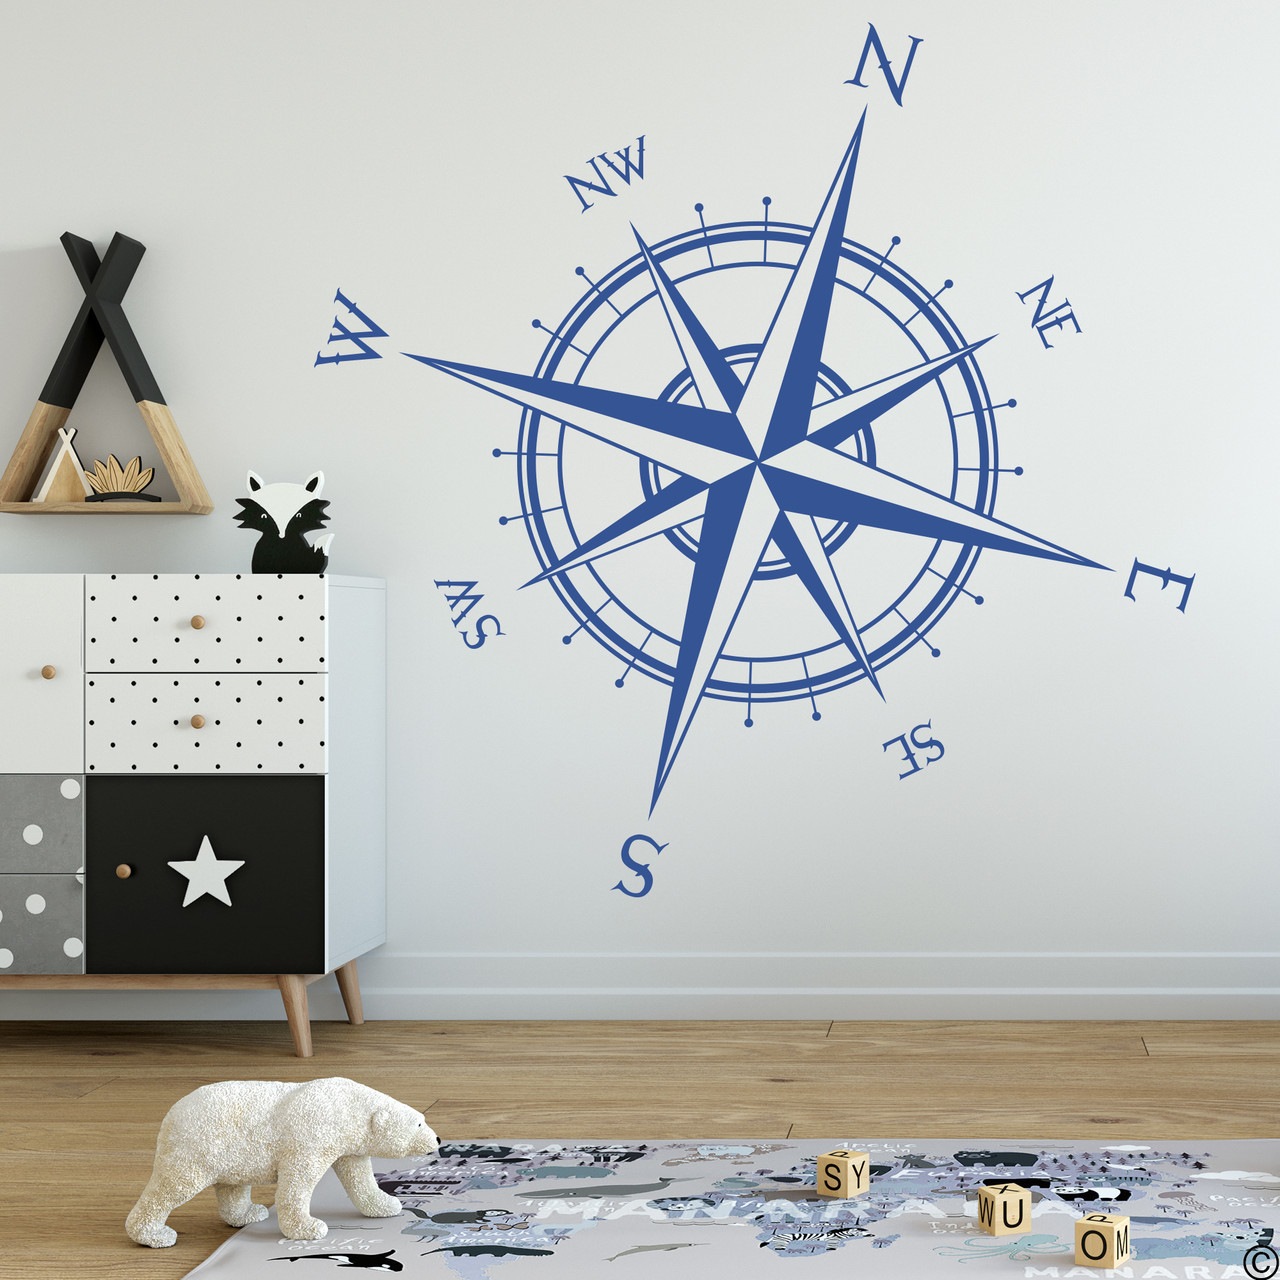 The Captain compass rose wall decal shown here in limited edition denim vinyl color.